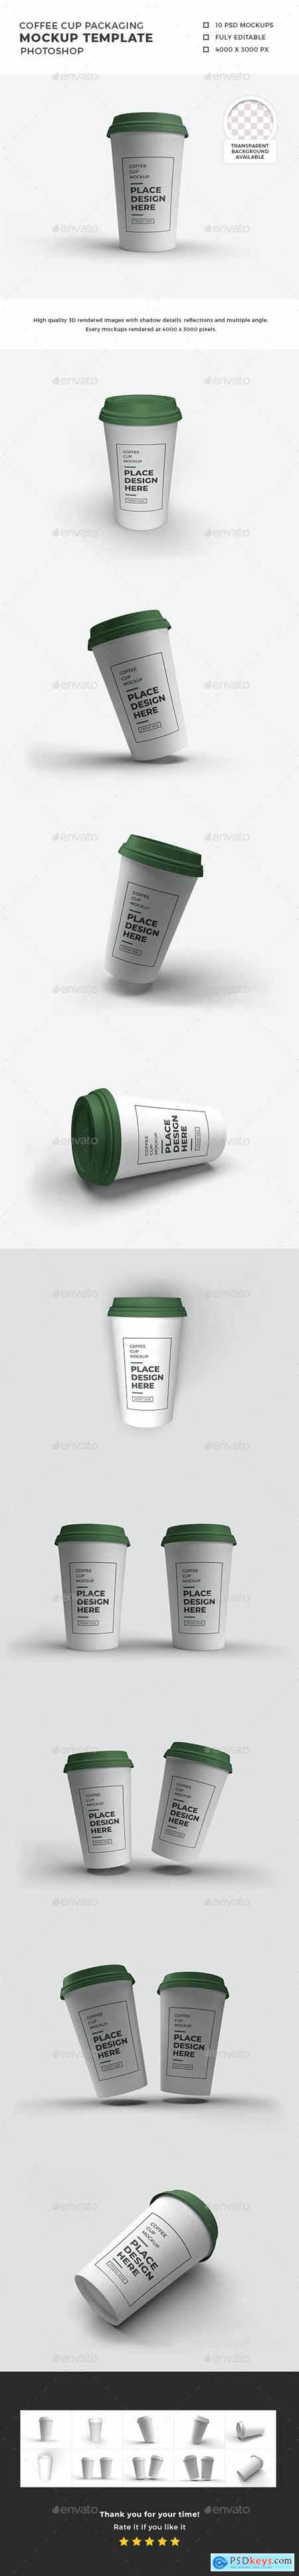 Coffee Cup Packaging Mockup Template Set 29925155